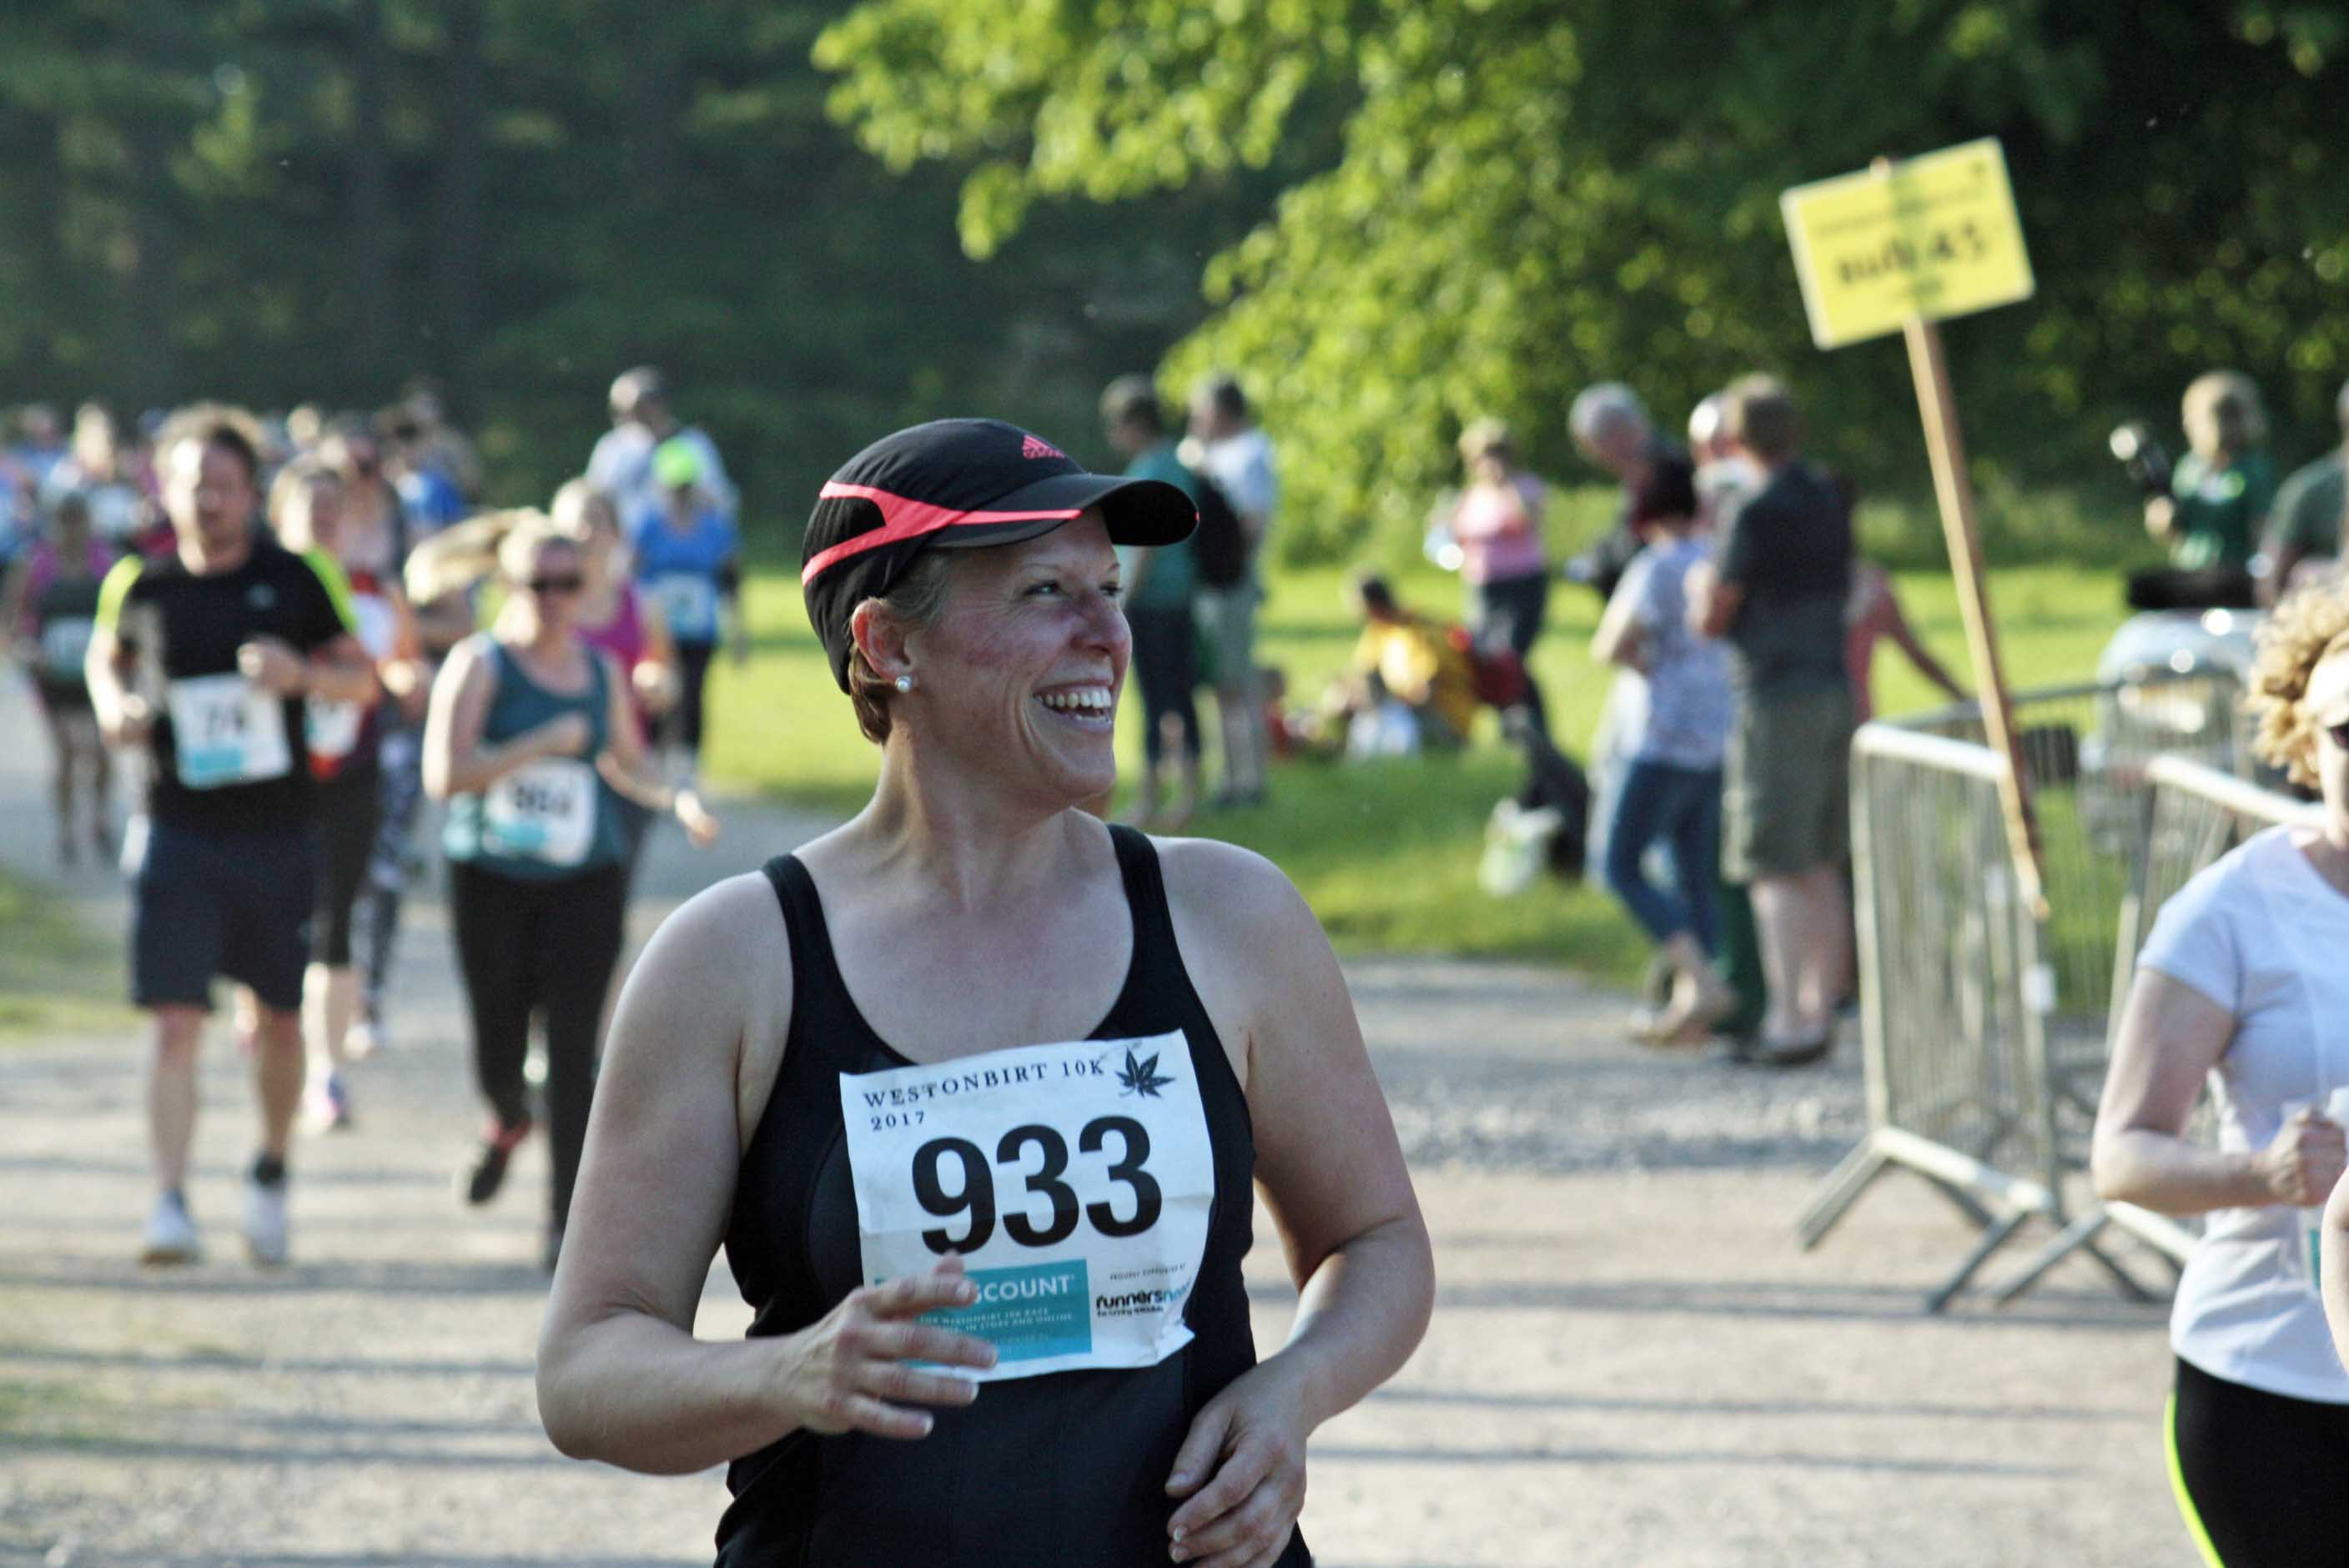 Lady running a 10K sponsored run